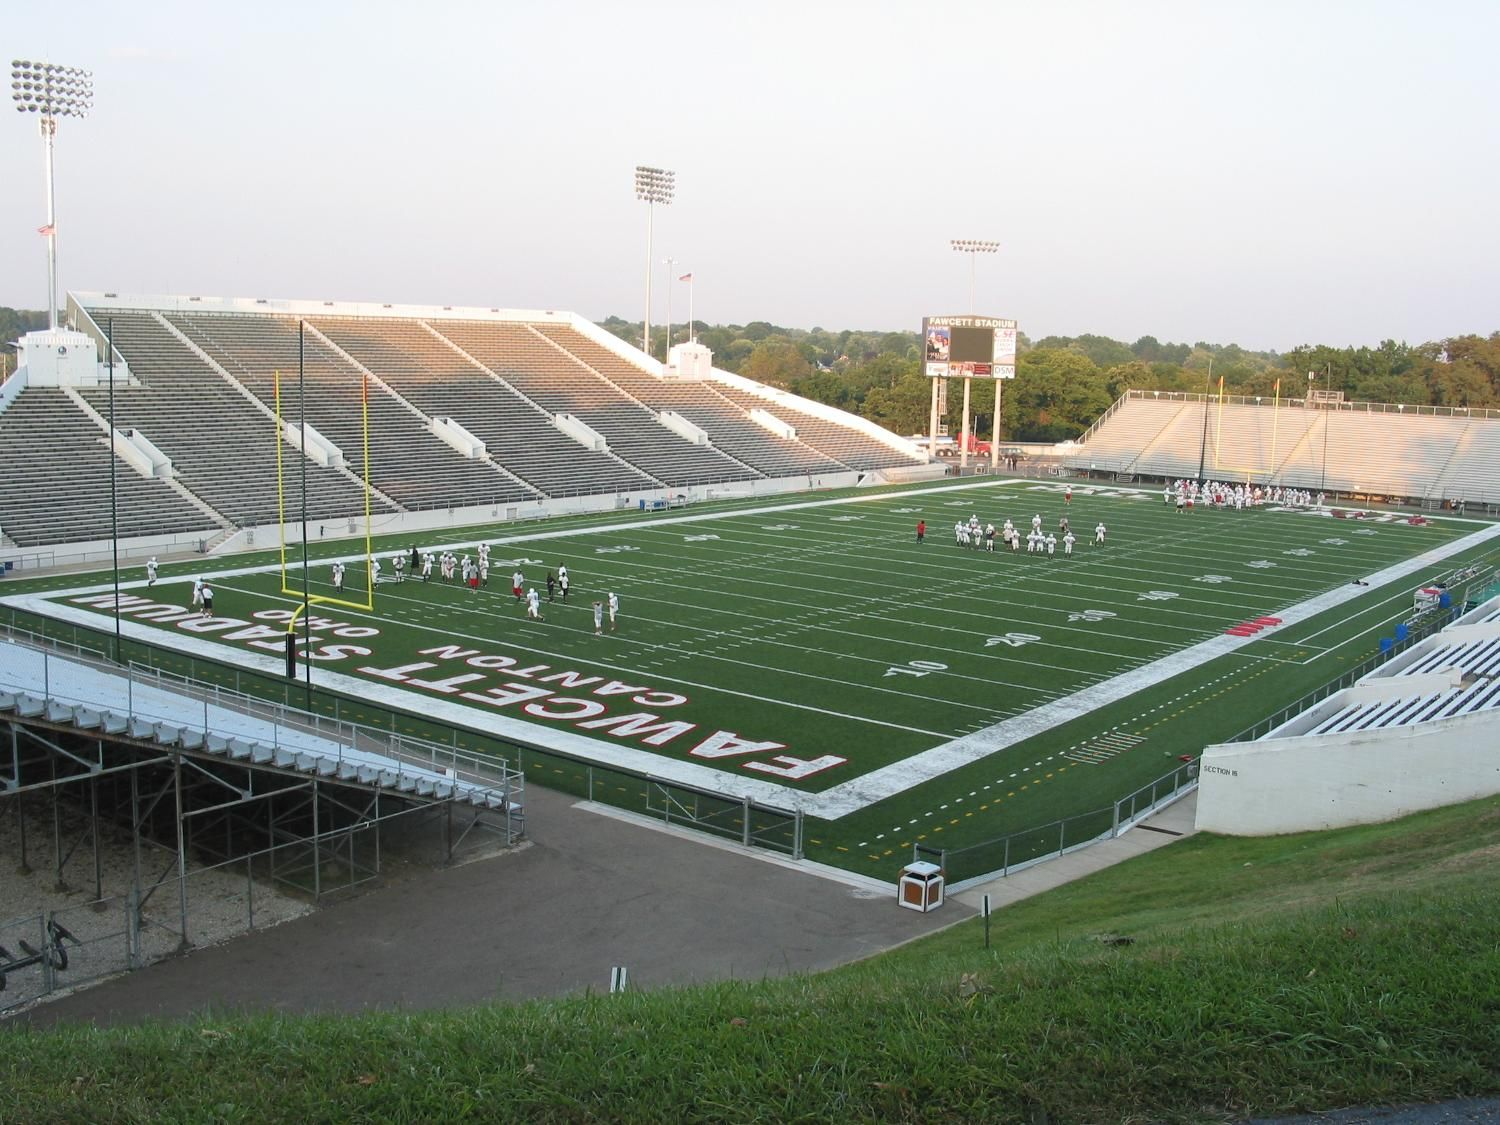 Canton Mckinley Football Stadium And Facilities Football Stadiums Stadium Hs Football